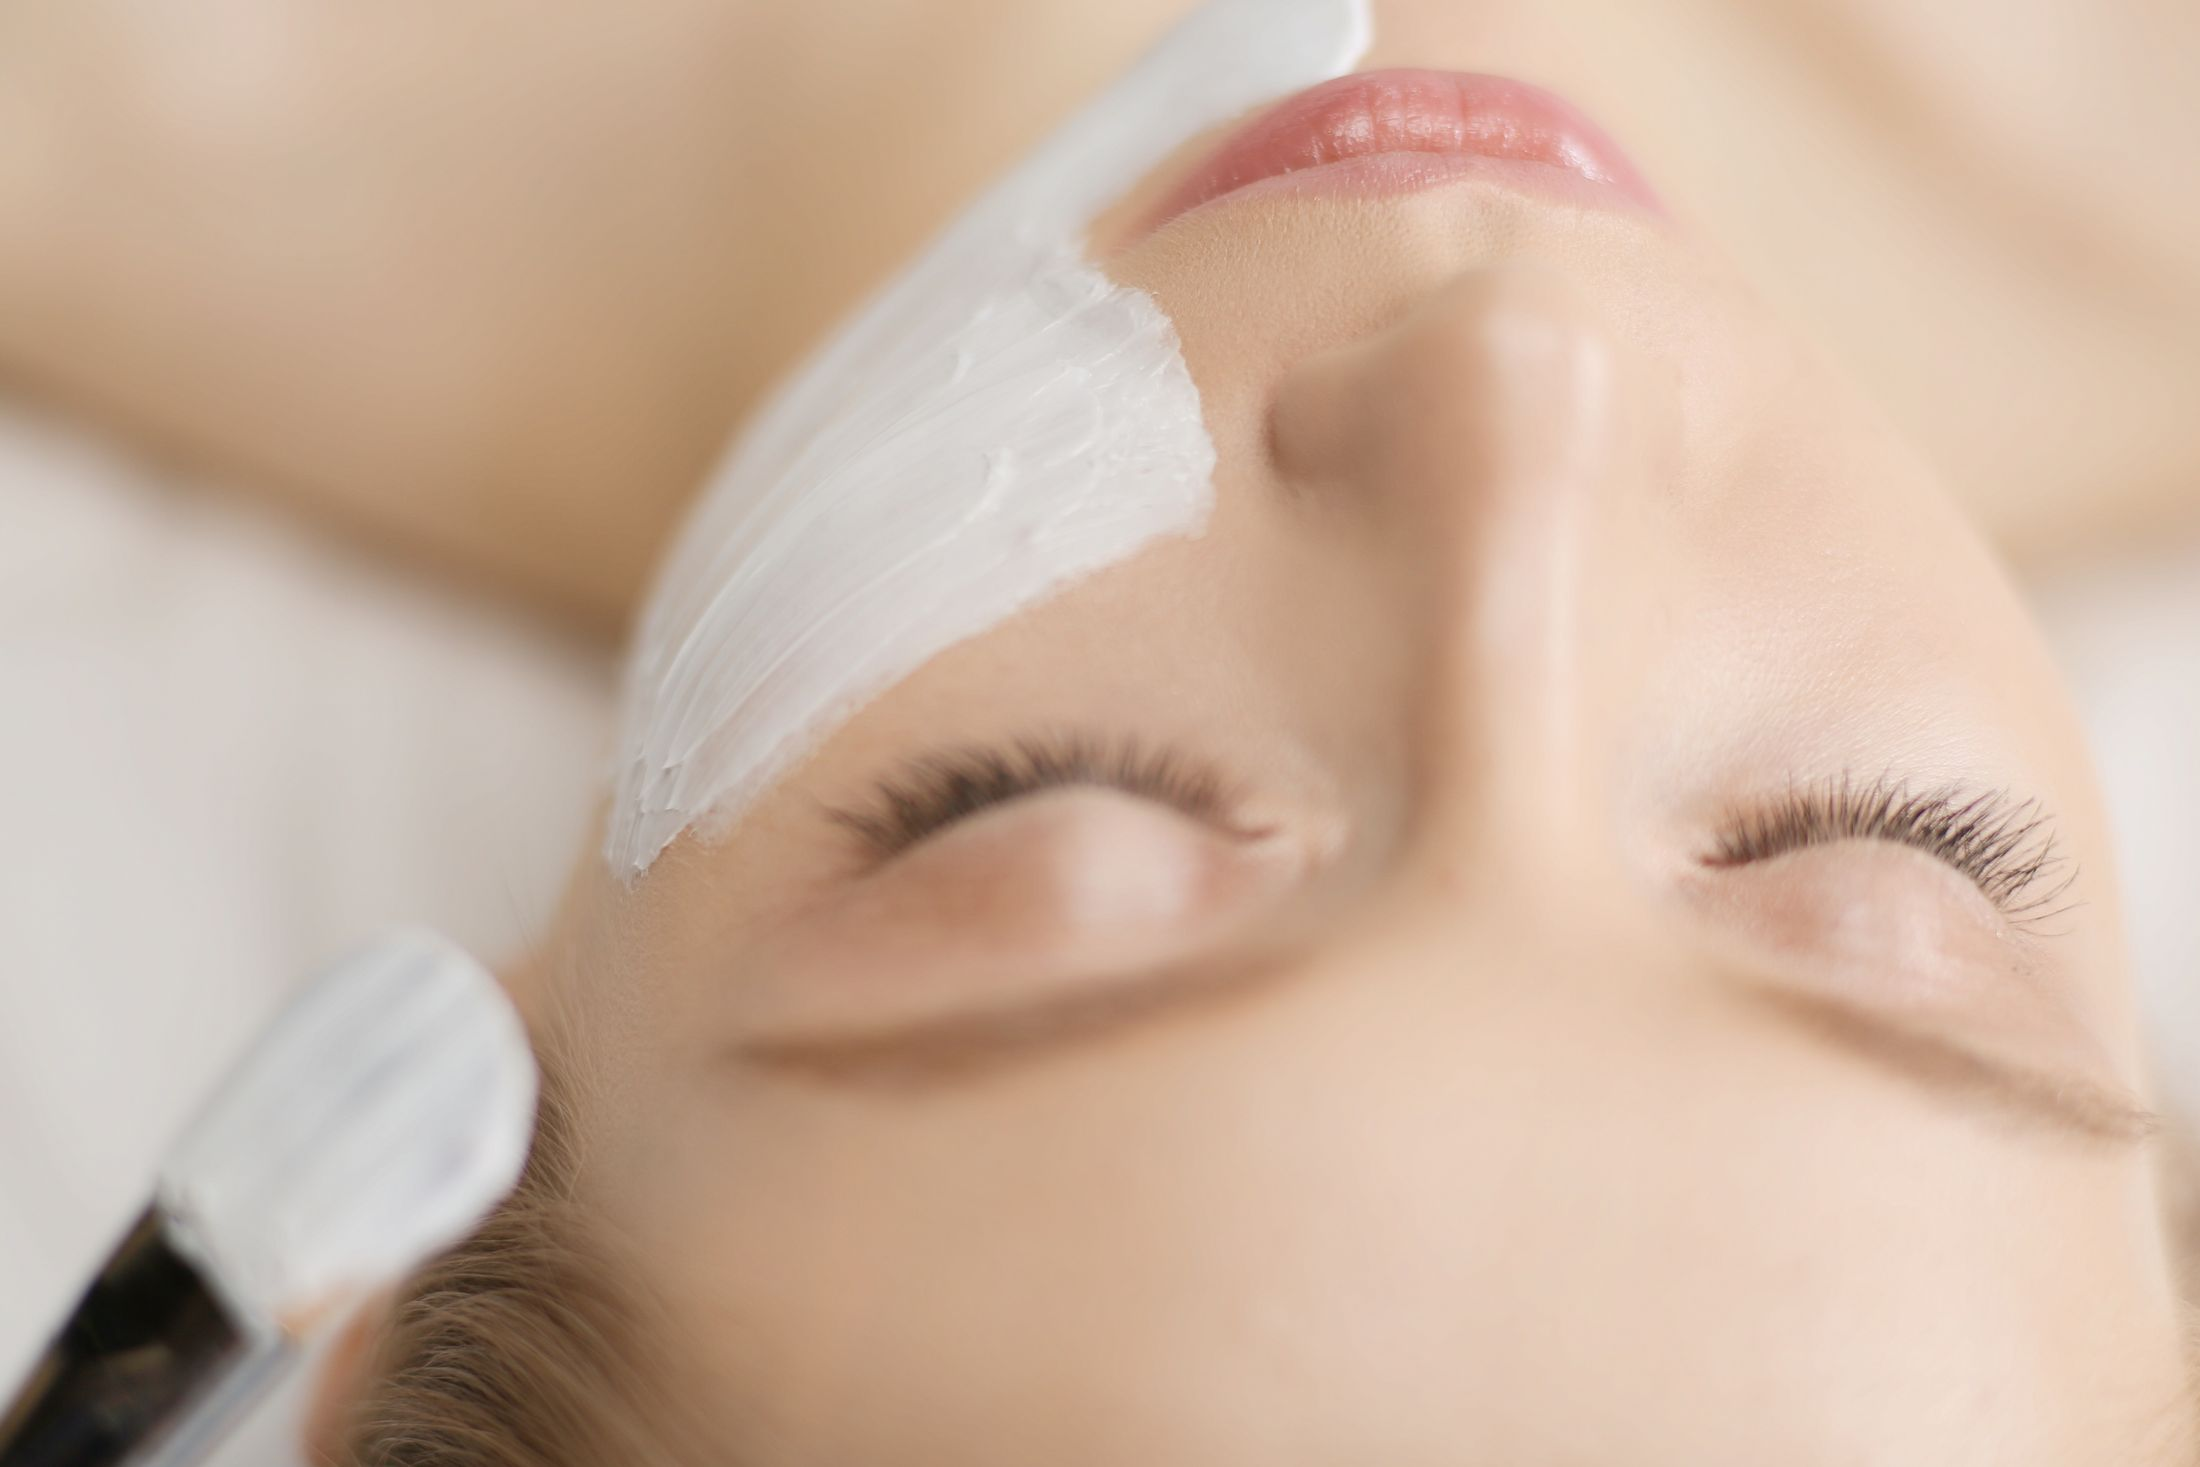 Woman receiving a chemical peel